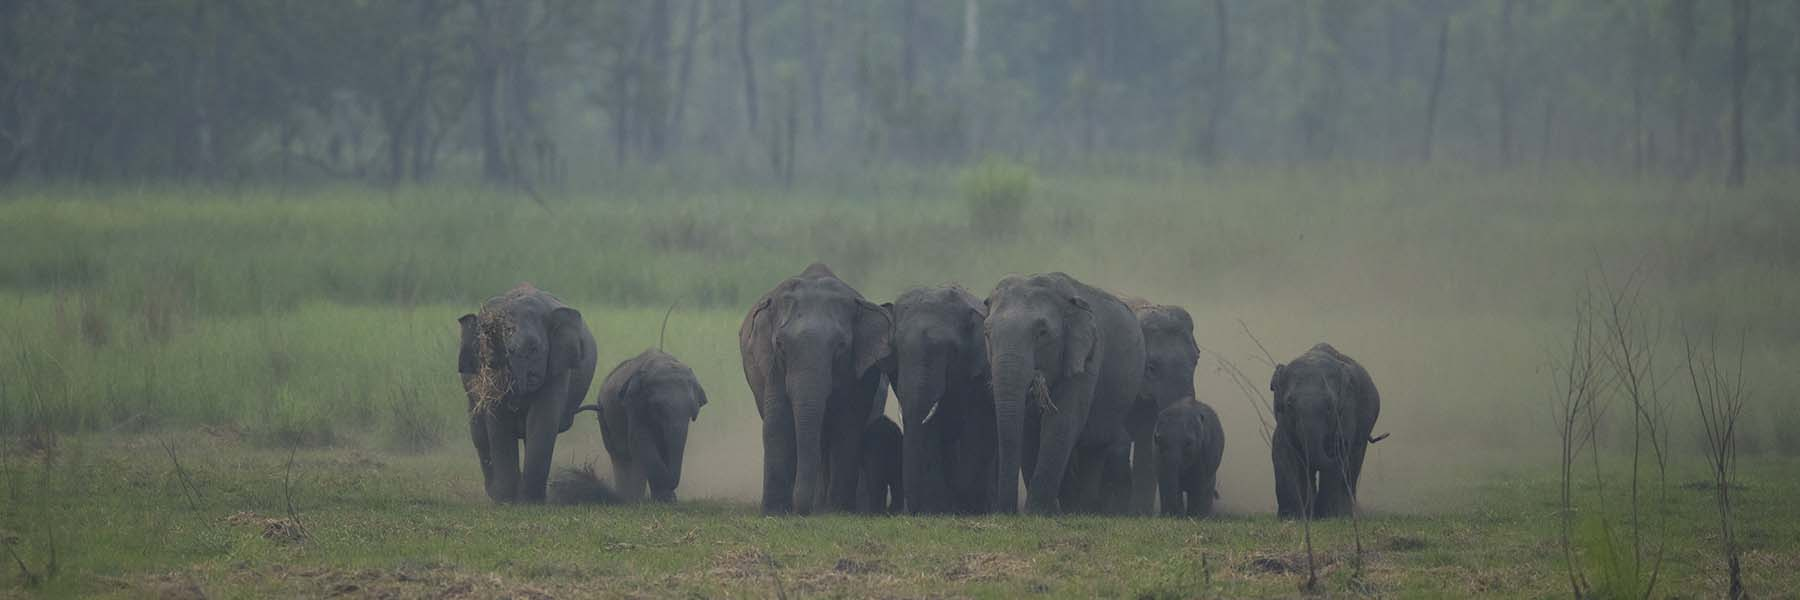 Elephant safaris in India and Africa